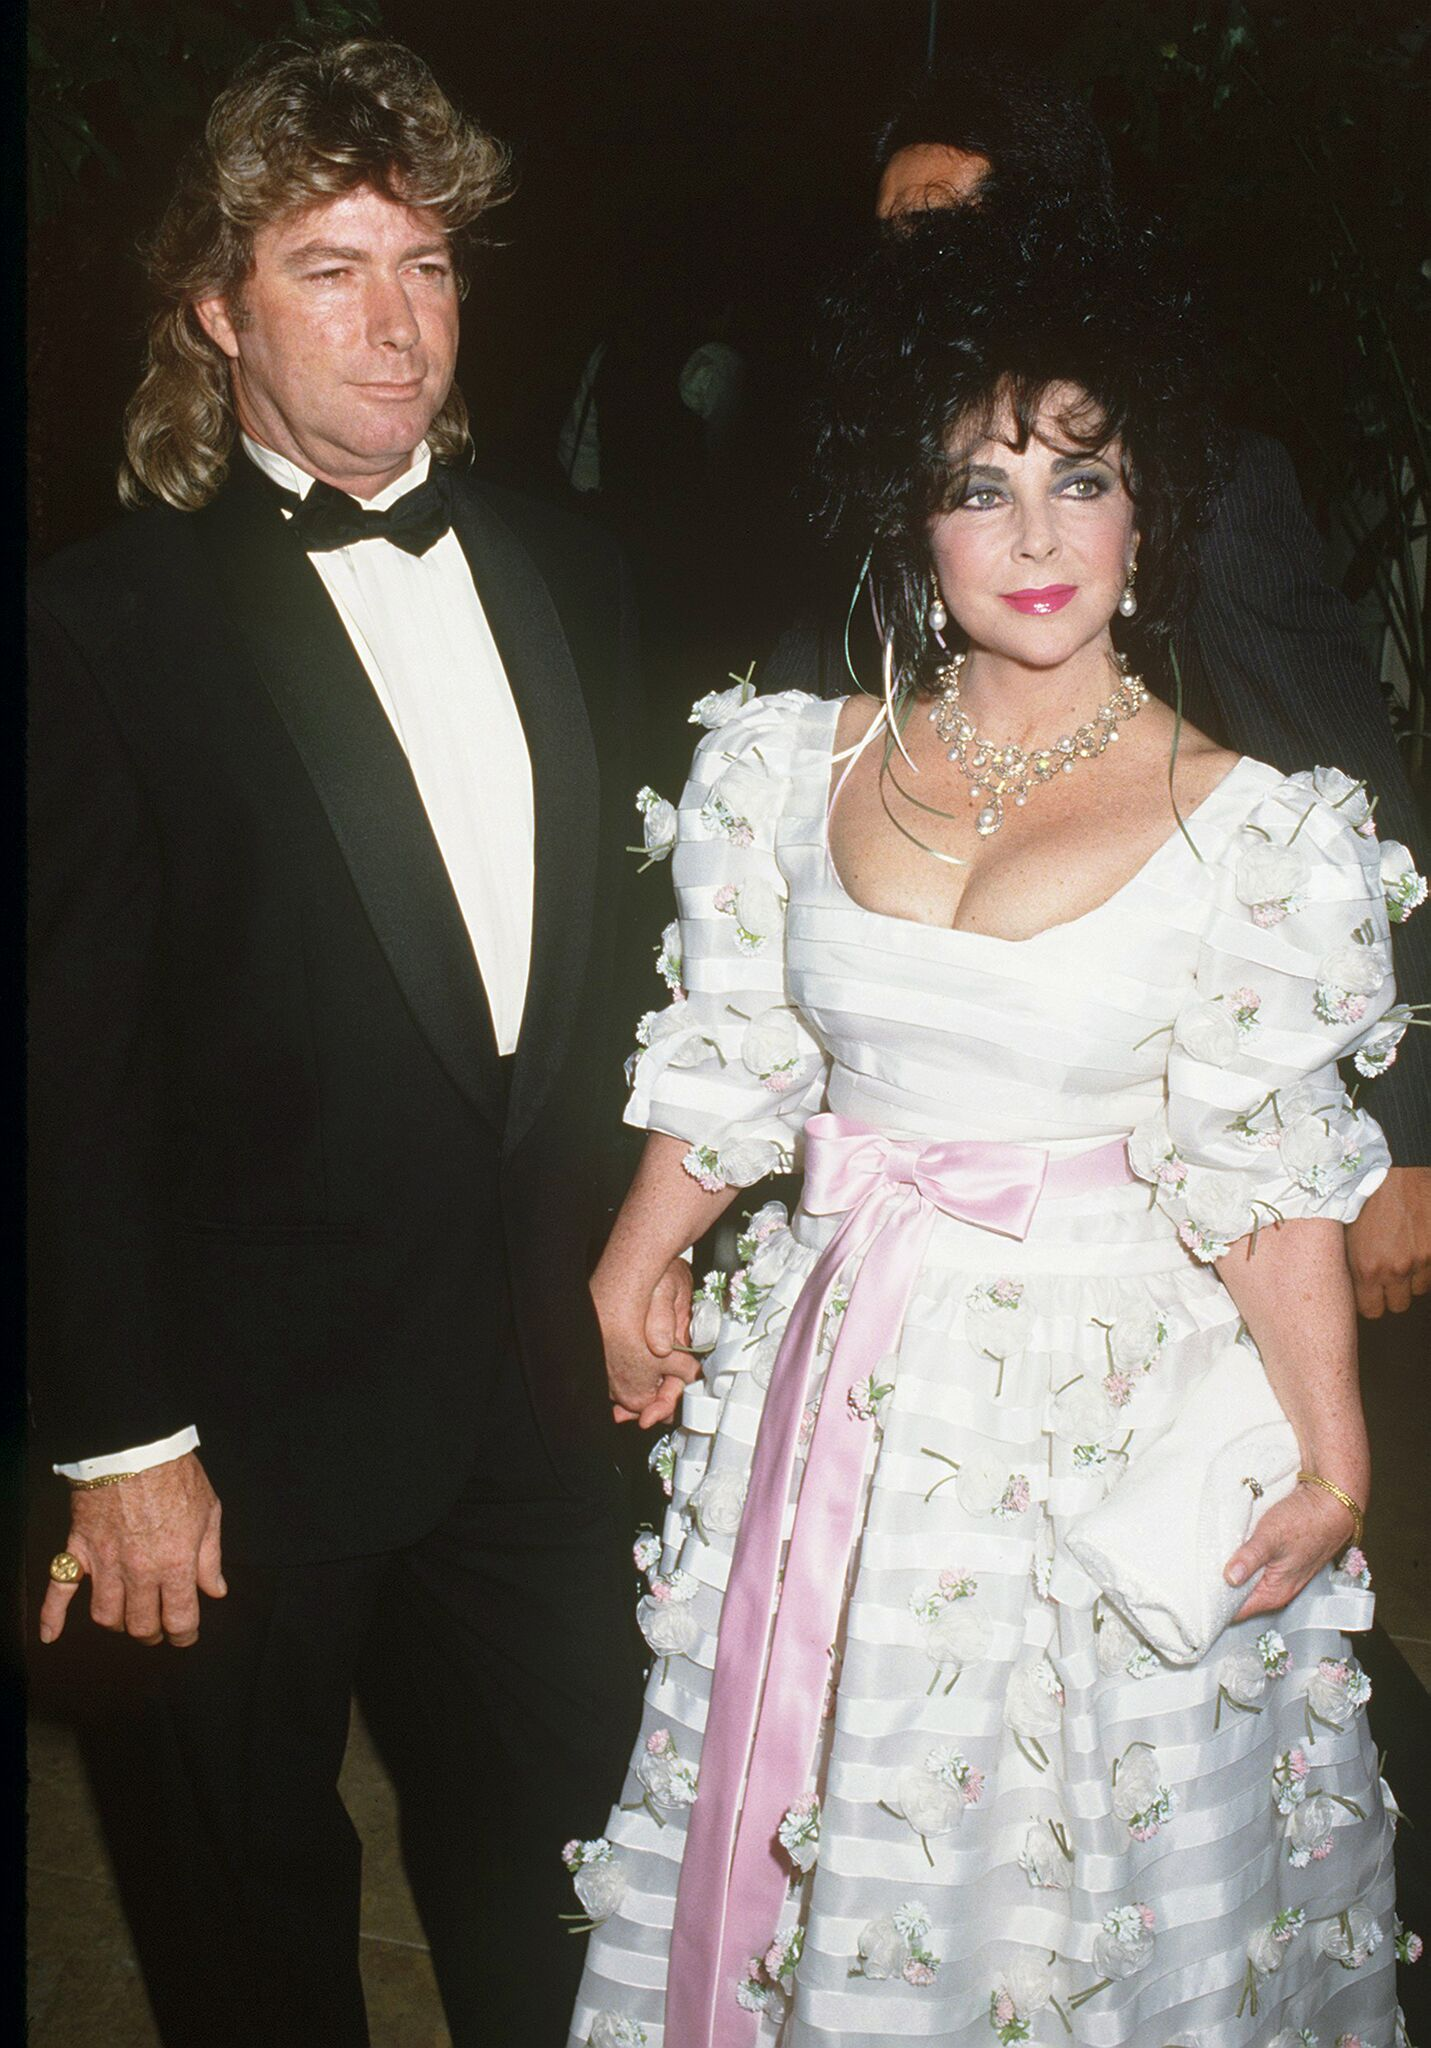 Elizabeth Taylor (1932 - 2011) and her husband Larry Fortensky attending the Carousel of Hope at the Beverly Hilton Hotel | Getty Images